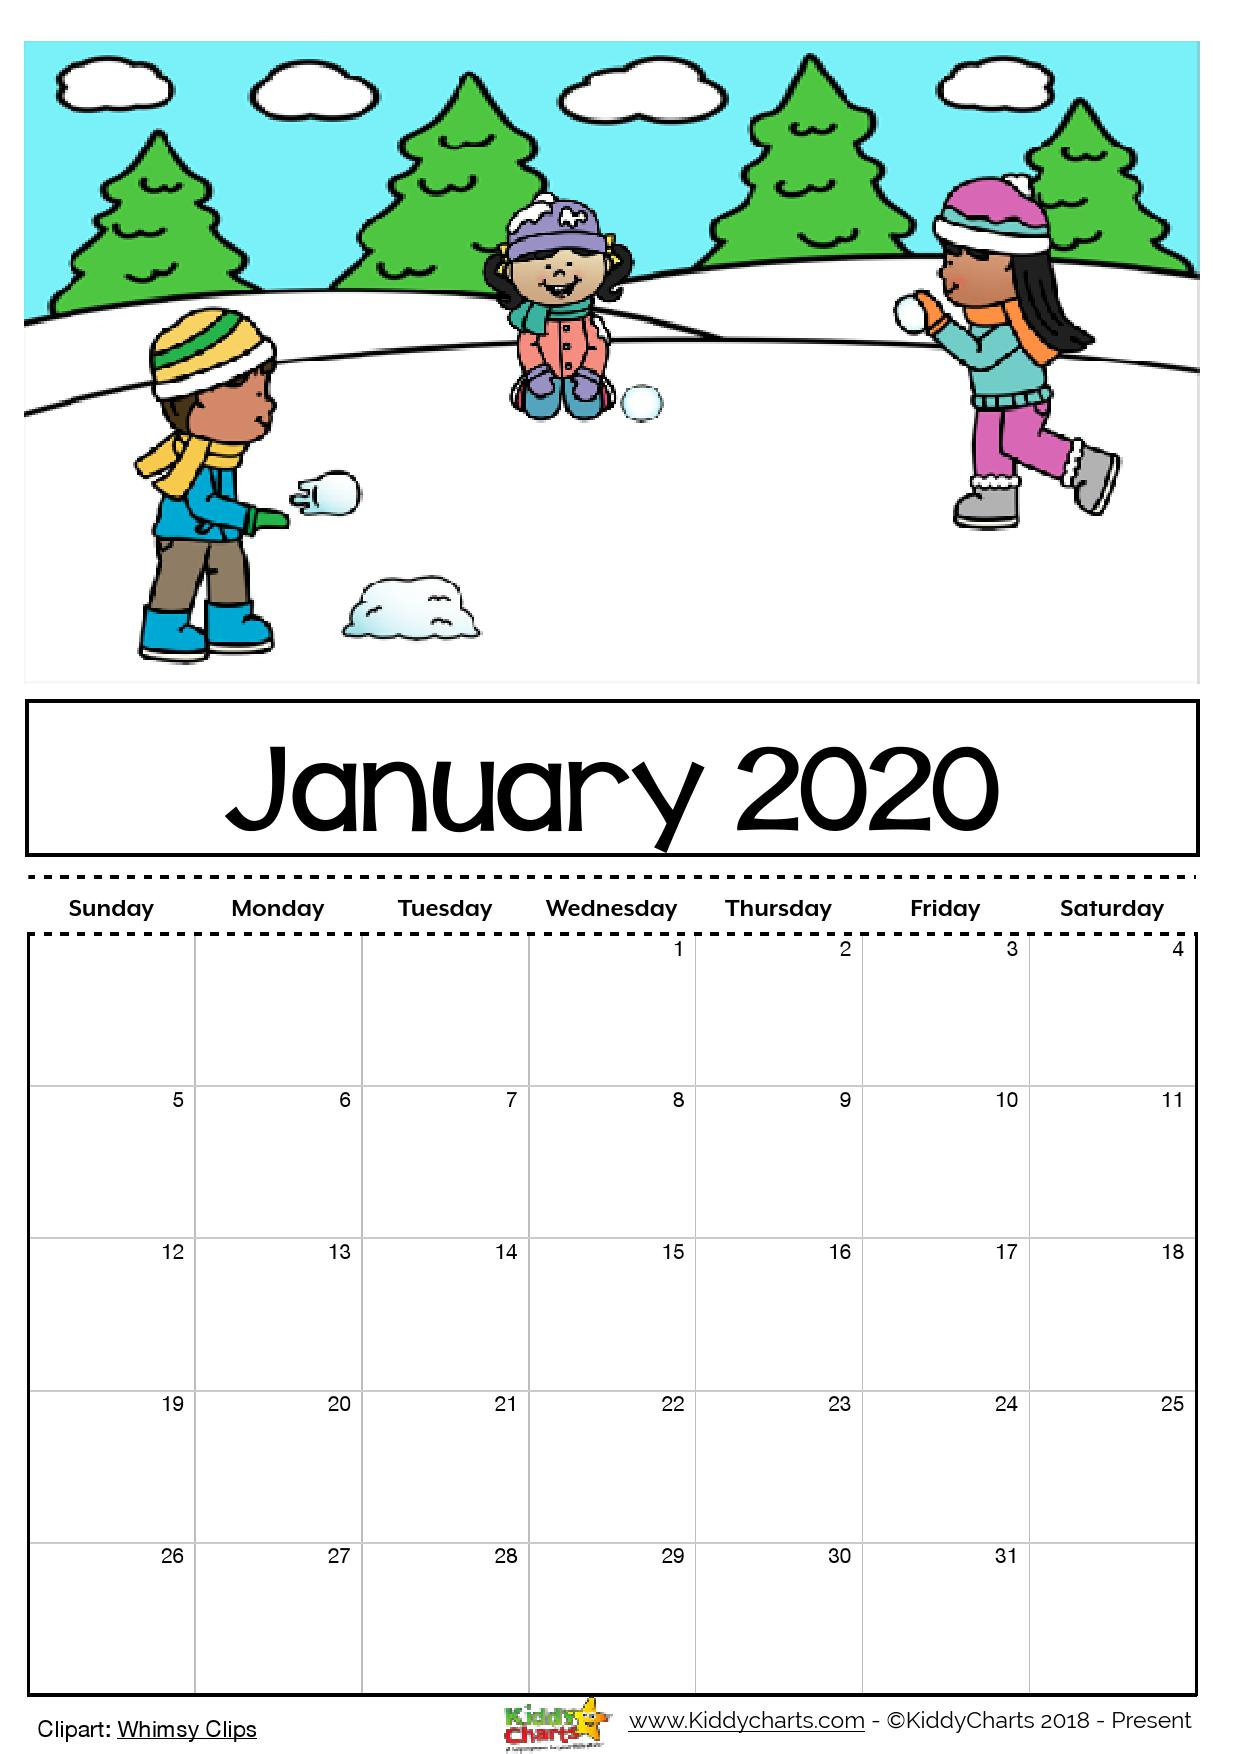 Free Printable 2020 Calendar For Kids, Including An Editable Version with Free Printable 2020 Calendar To I Can Edit